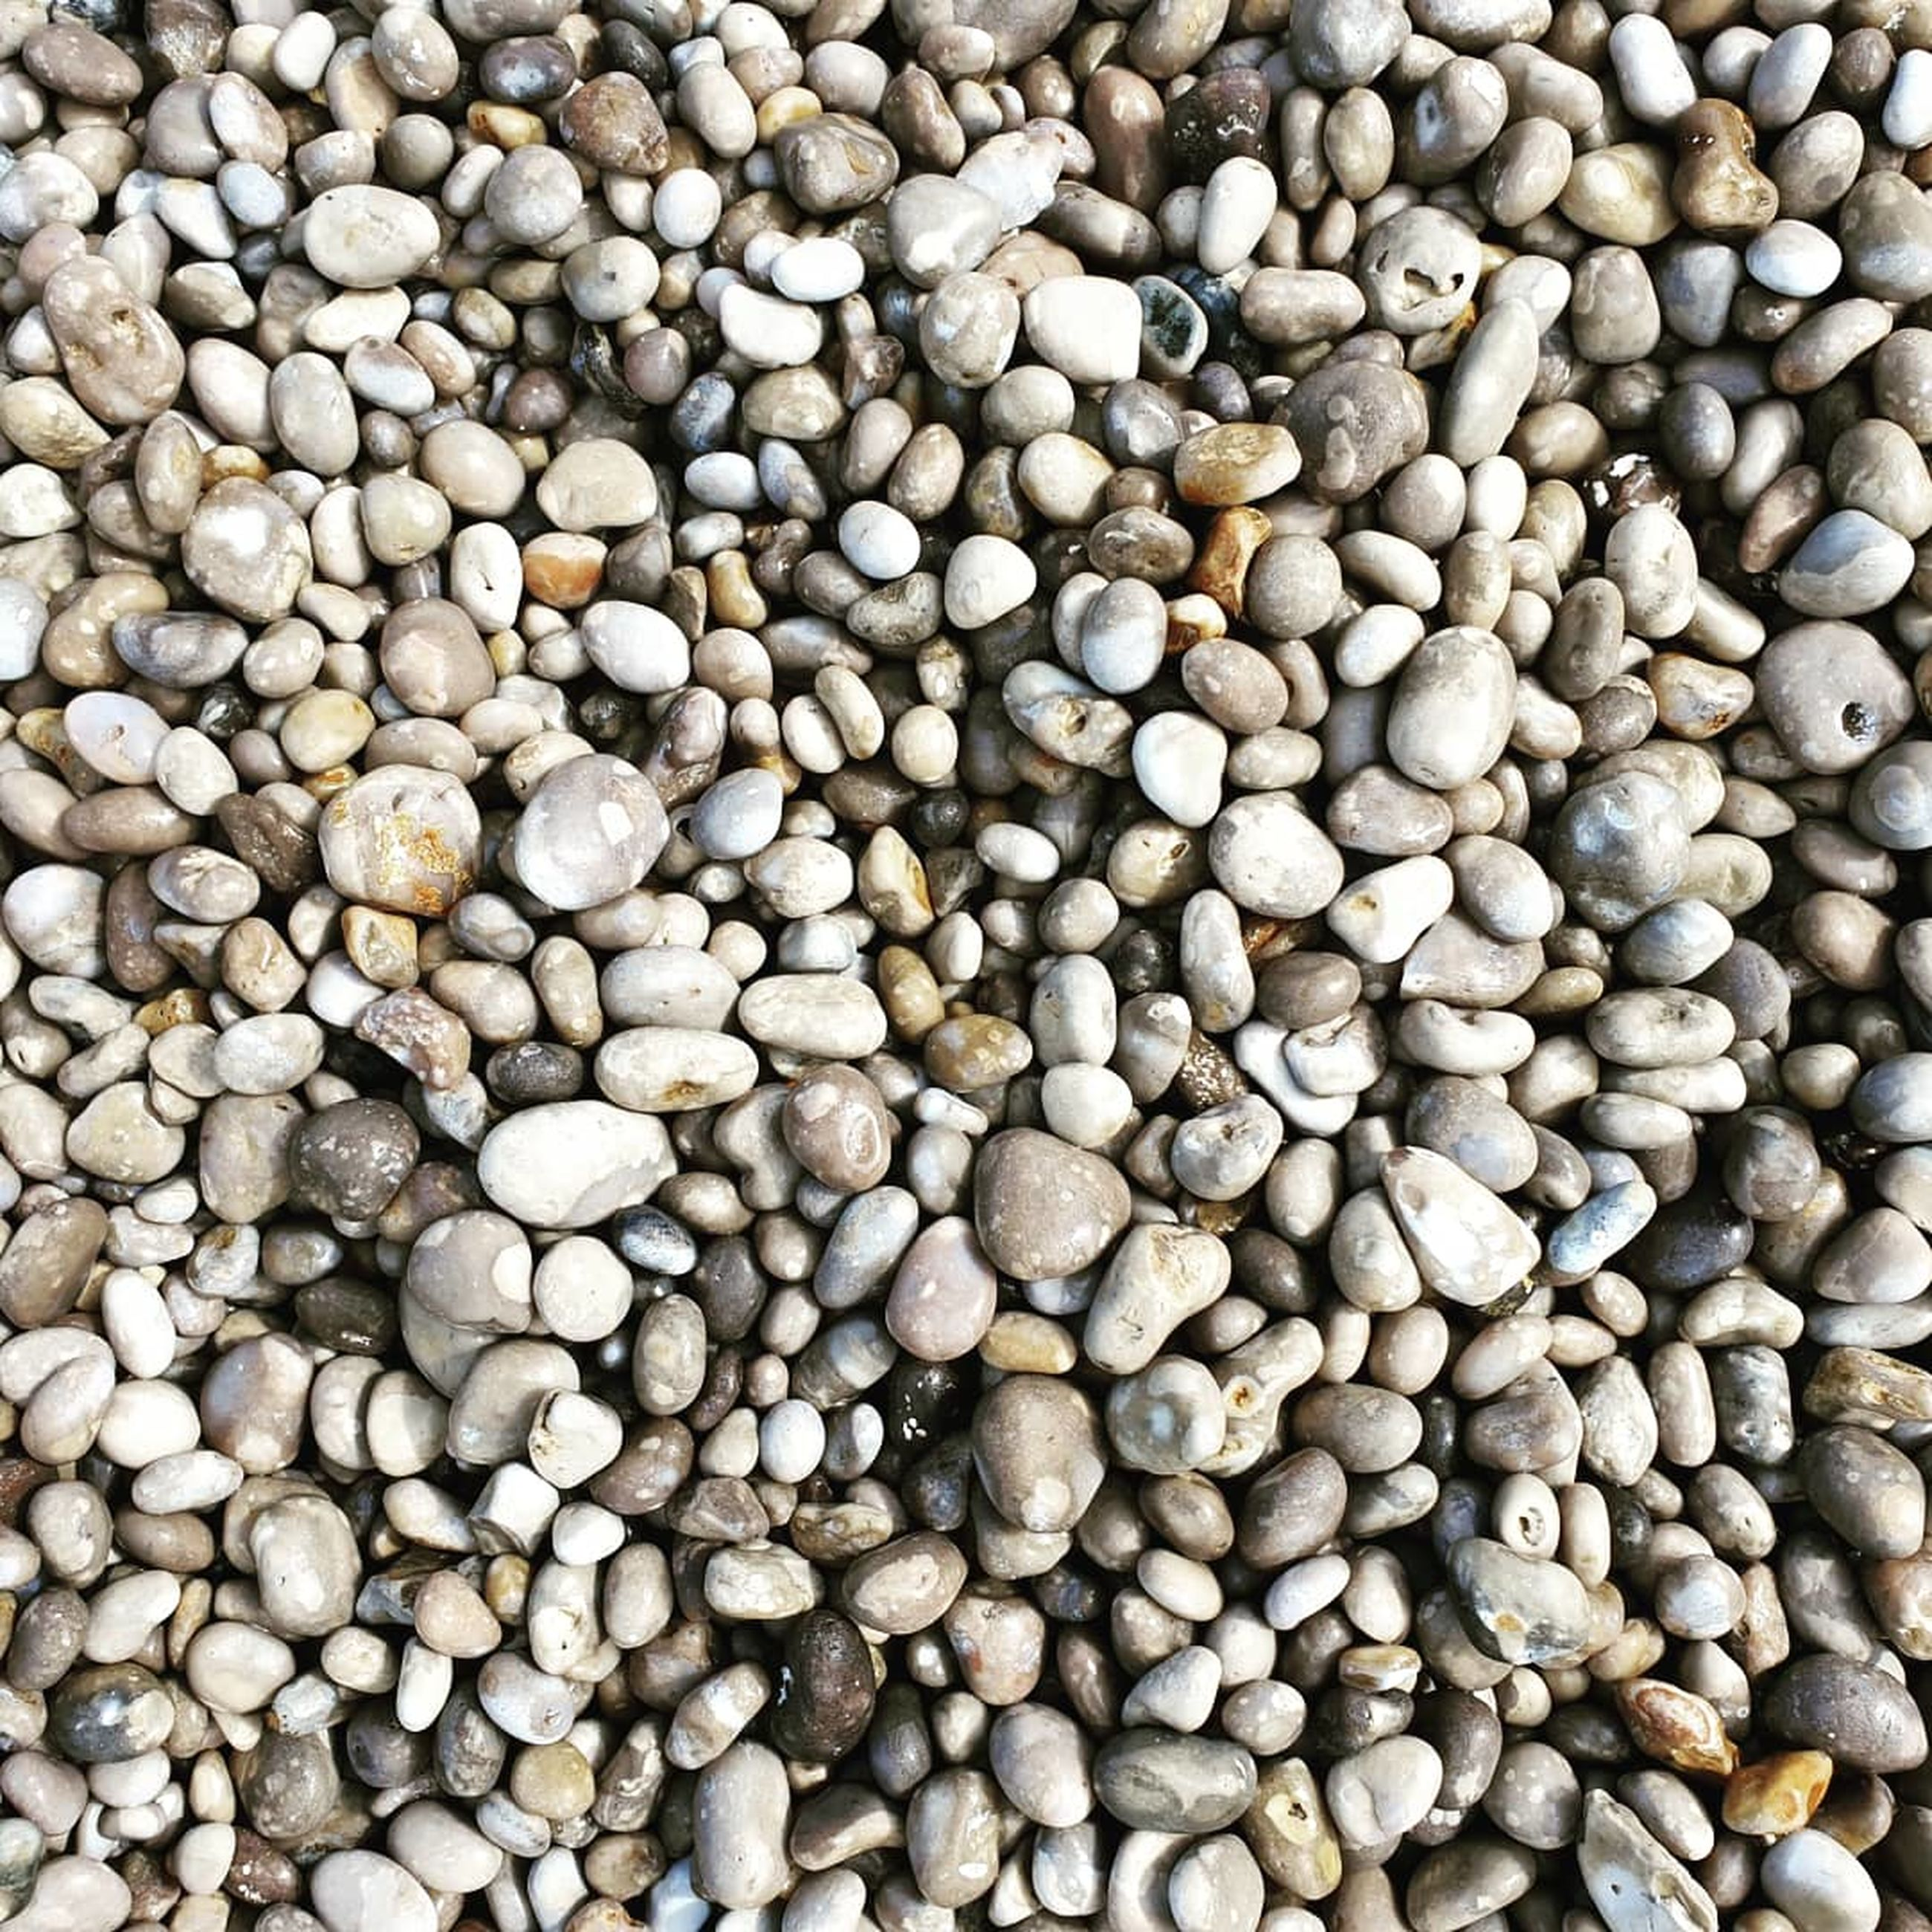 full frame, abundance, large group of objects, backgrounds, food and drink, food, no people, directly above, high angle view, still life, freshness, day, wellbeing, healthy eating, nature, outdoors, close-up, for sale, repetition, pebble